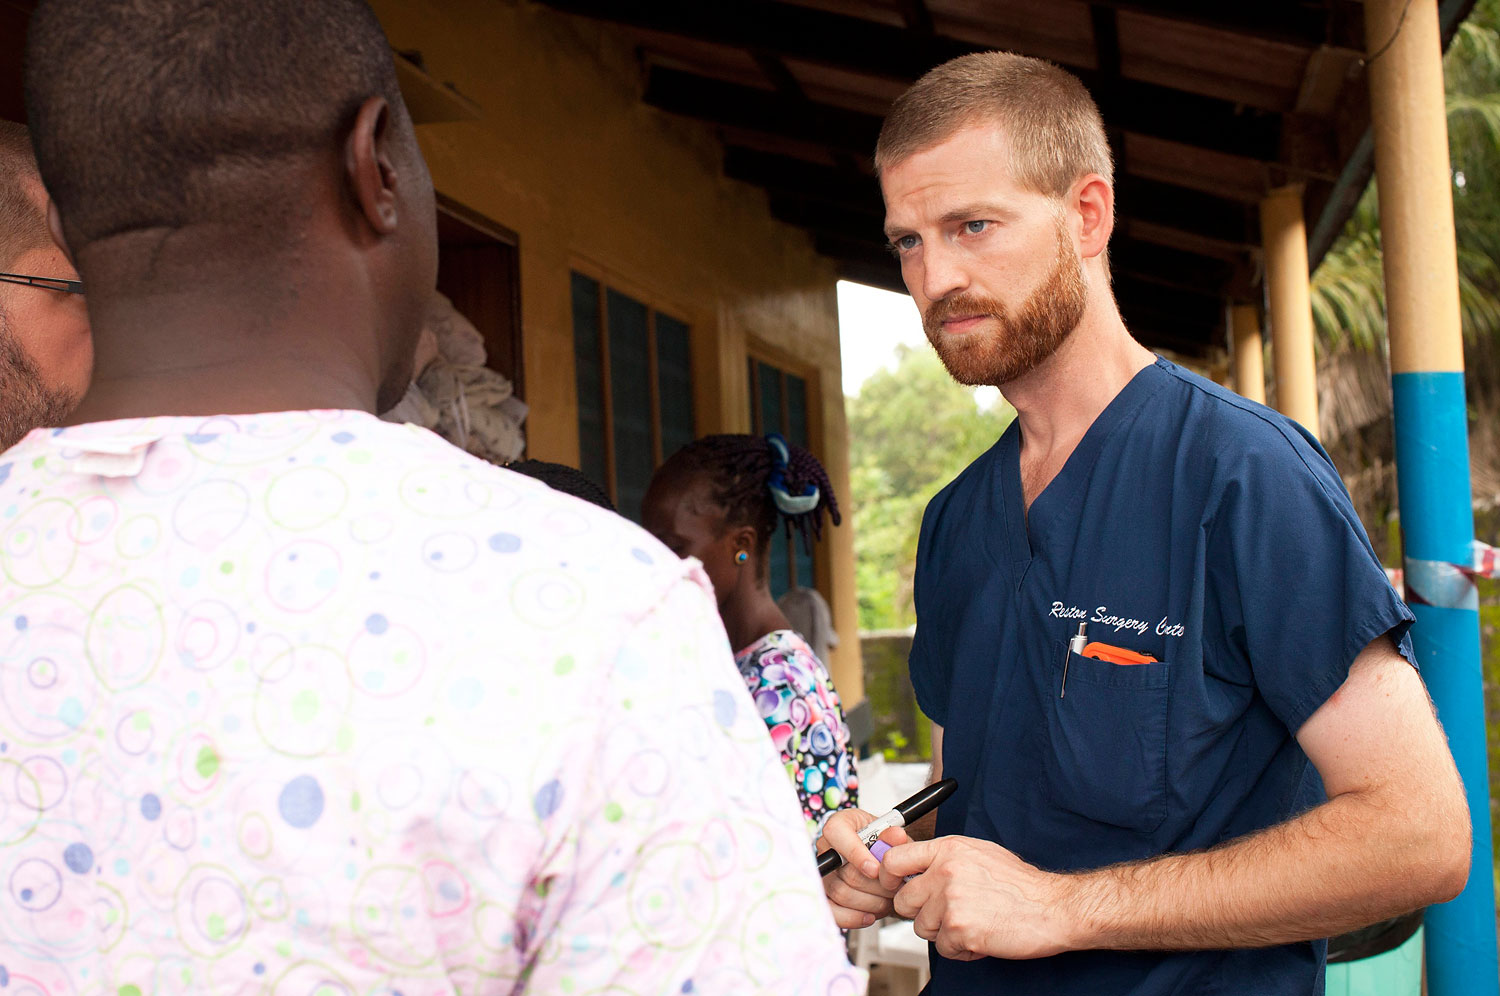 In an undated handout photograph courtesy of Samaritan's Purse, Dr. Kent Brantly, right,  with colleagues at the case management center on the campus of ELWA Hospital in Monrovia, Liberia. Brantly, who  contracted Ebola, is receiving treatment at Emory University Hospital in Atlanta